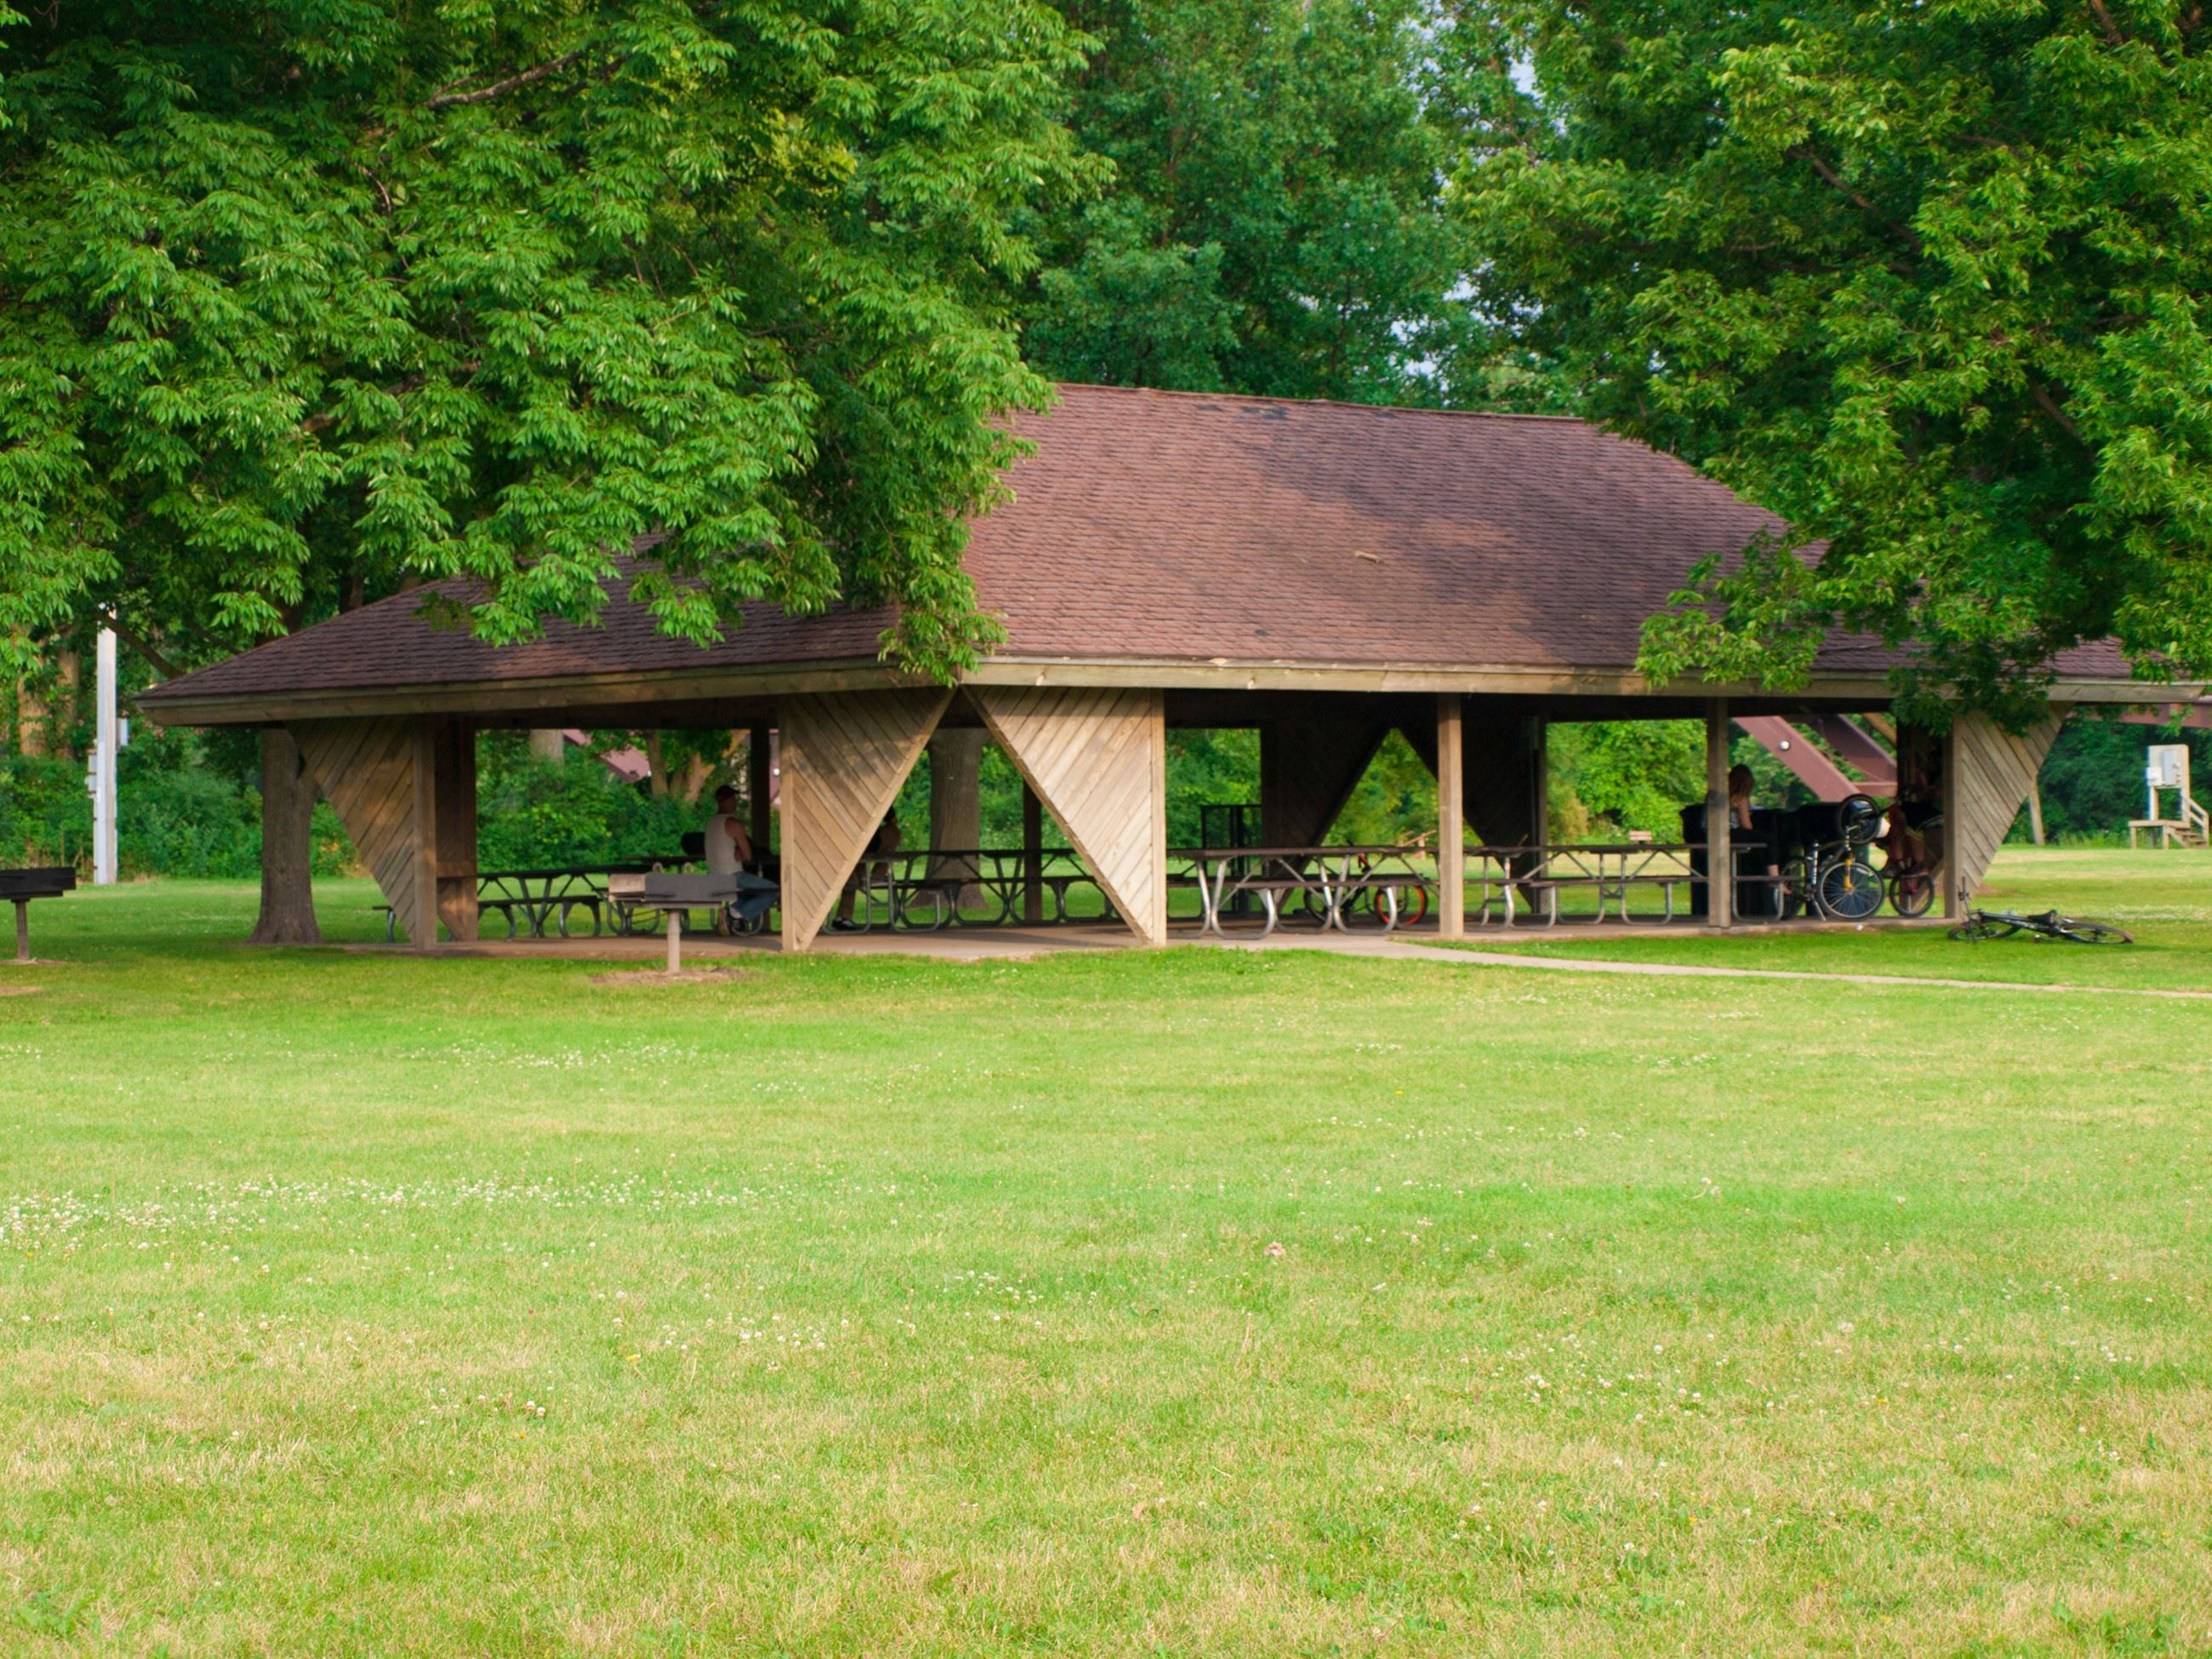 Image of an outdoor pavilion under trees